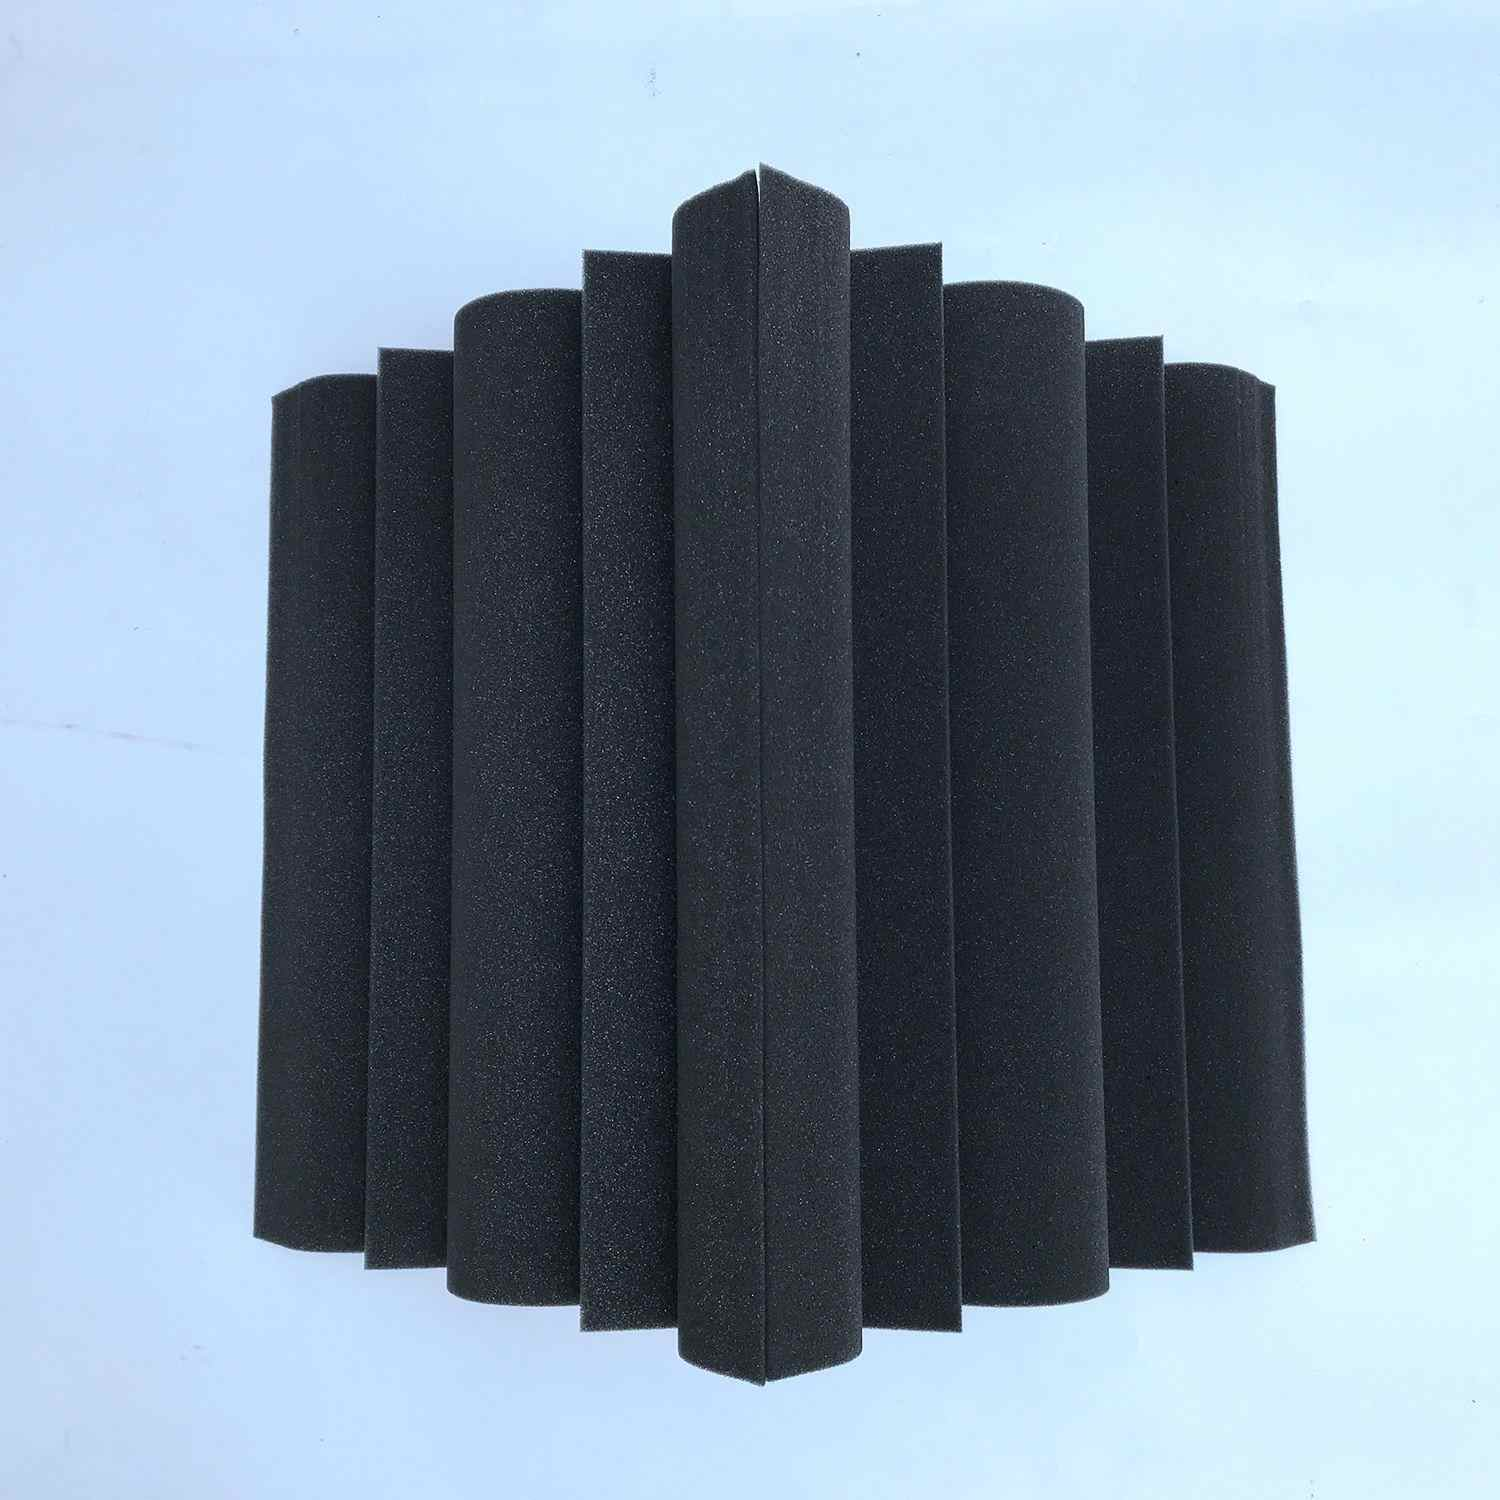 4 pcs Corner Bass Trap Acoustic Panel Studio Sound Absorption Foam 12*12*24cm For maximum noise absorption